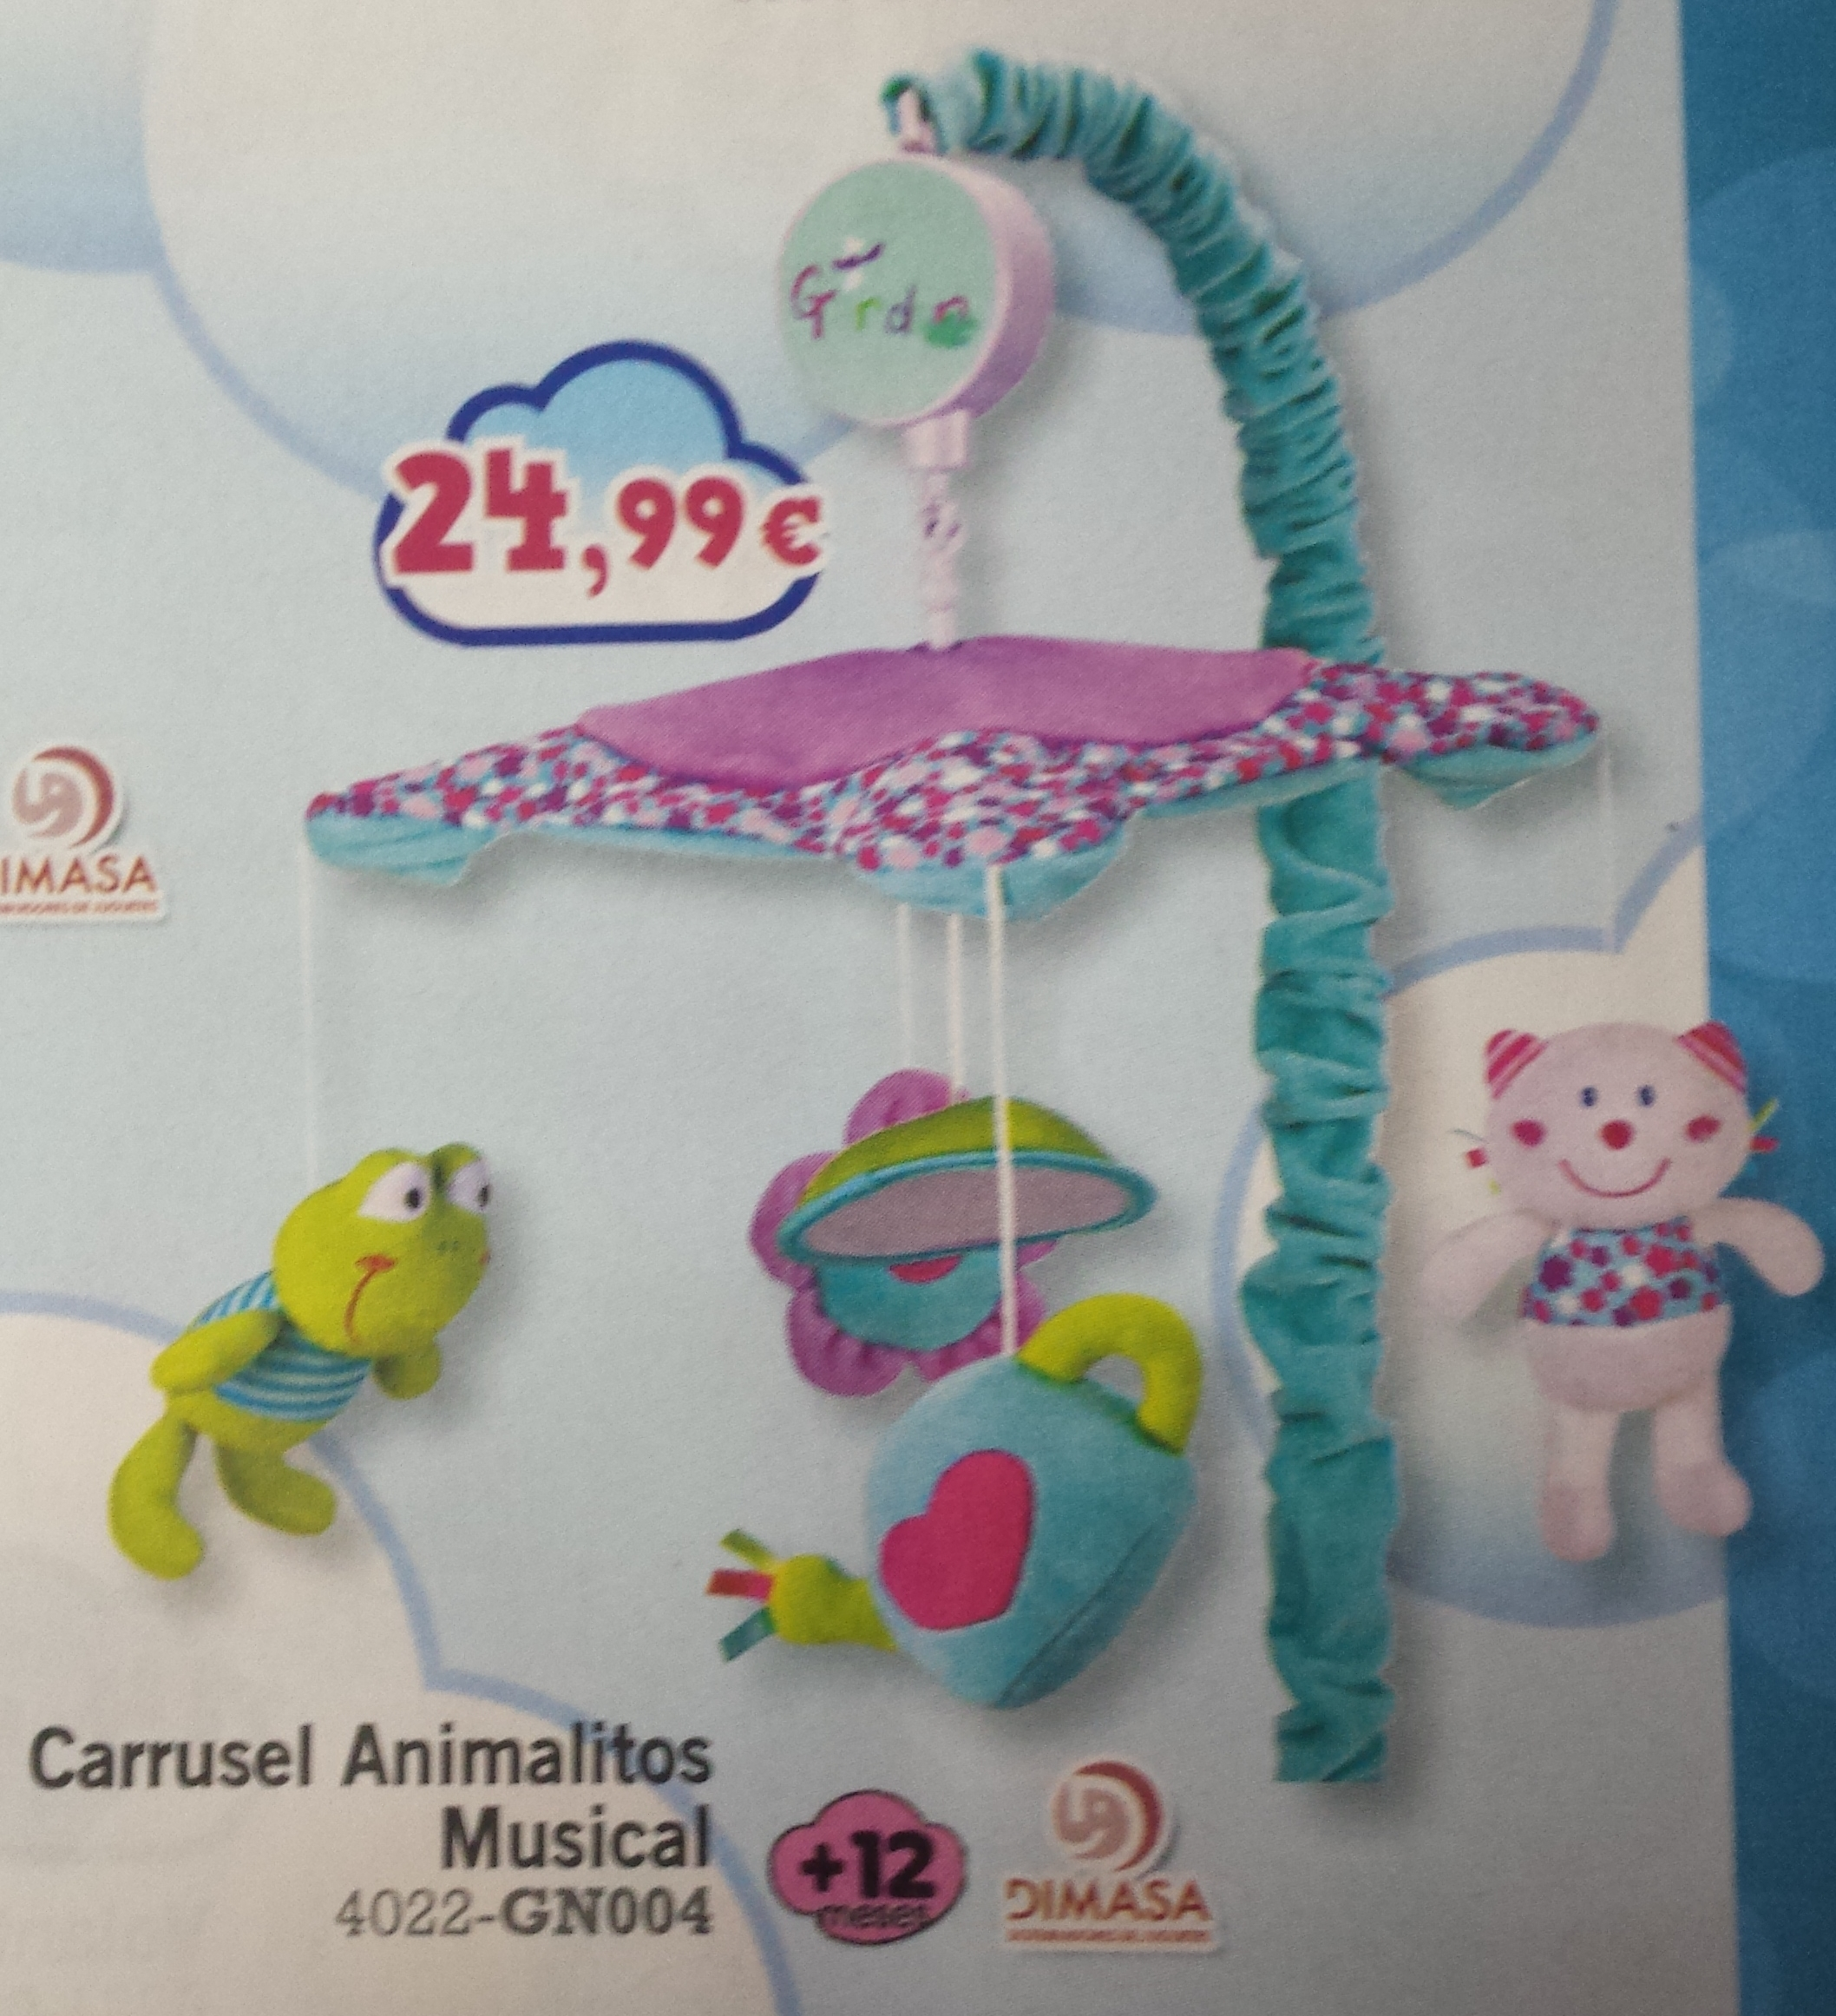 CARRUSEL ANIMALITOS MUSICAL